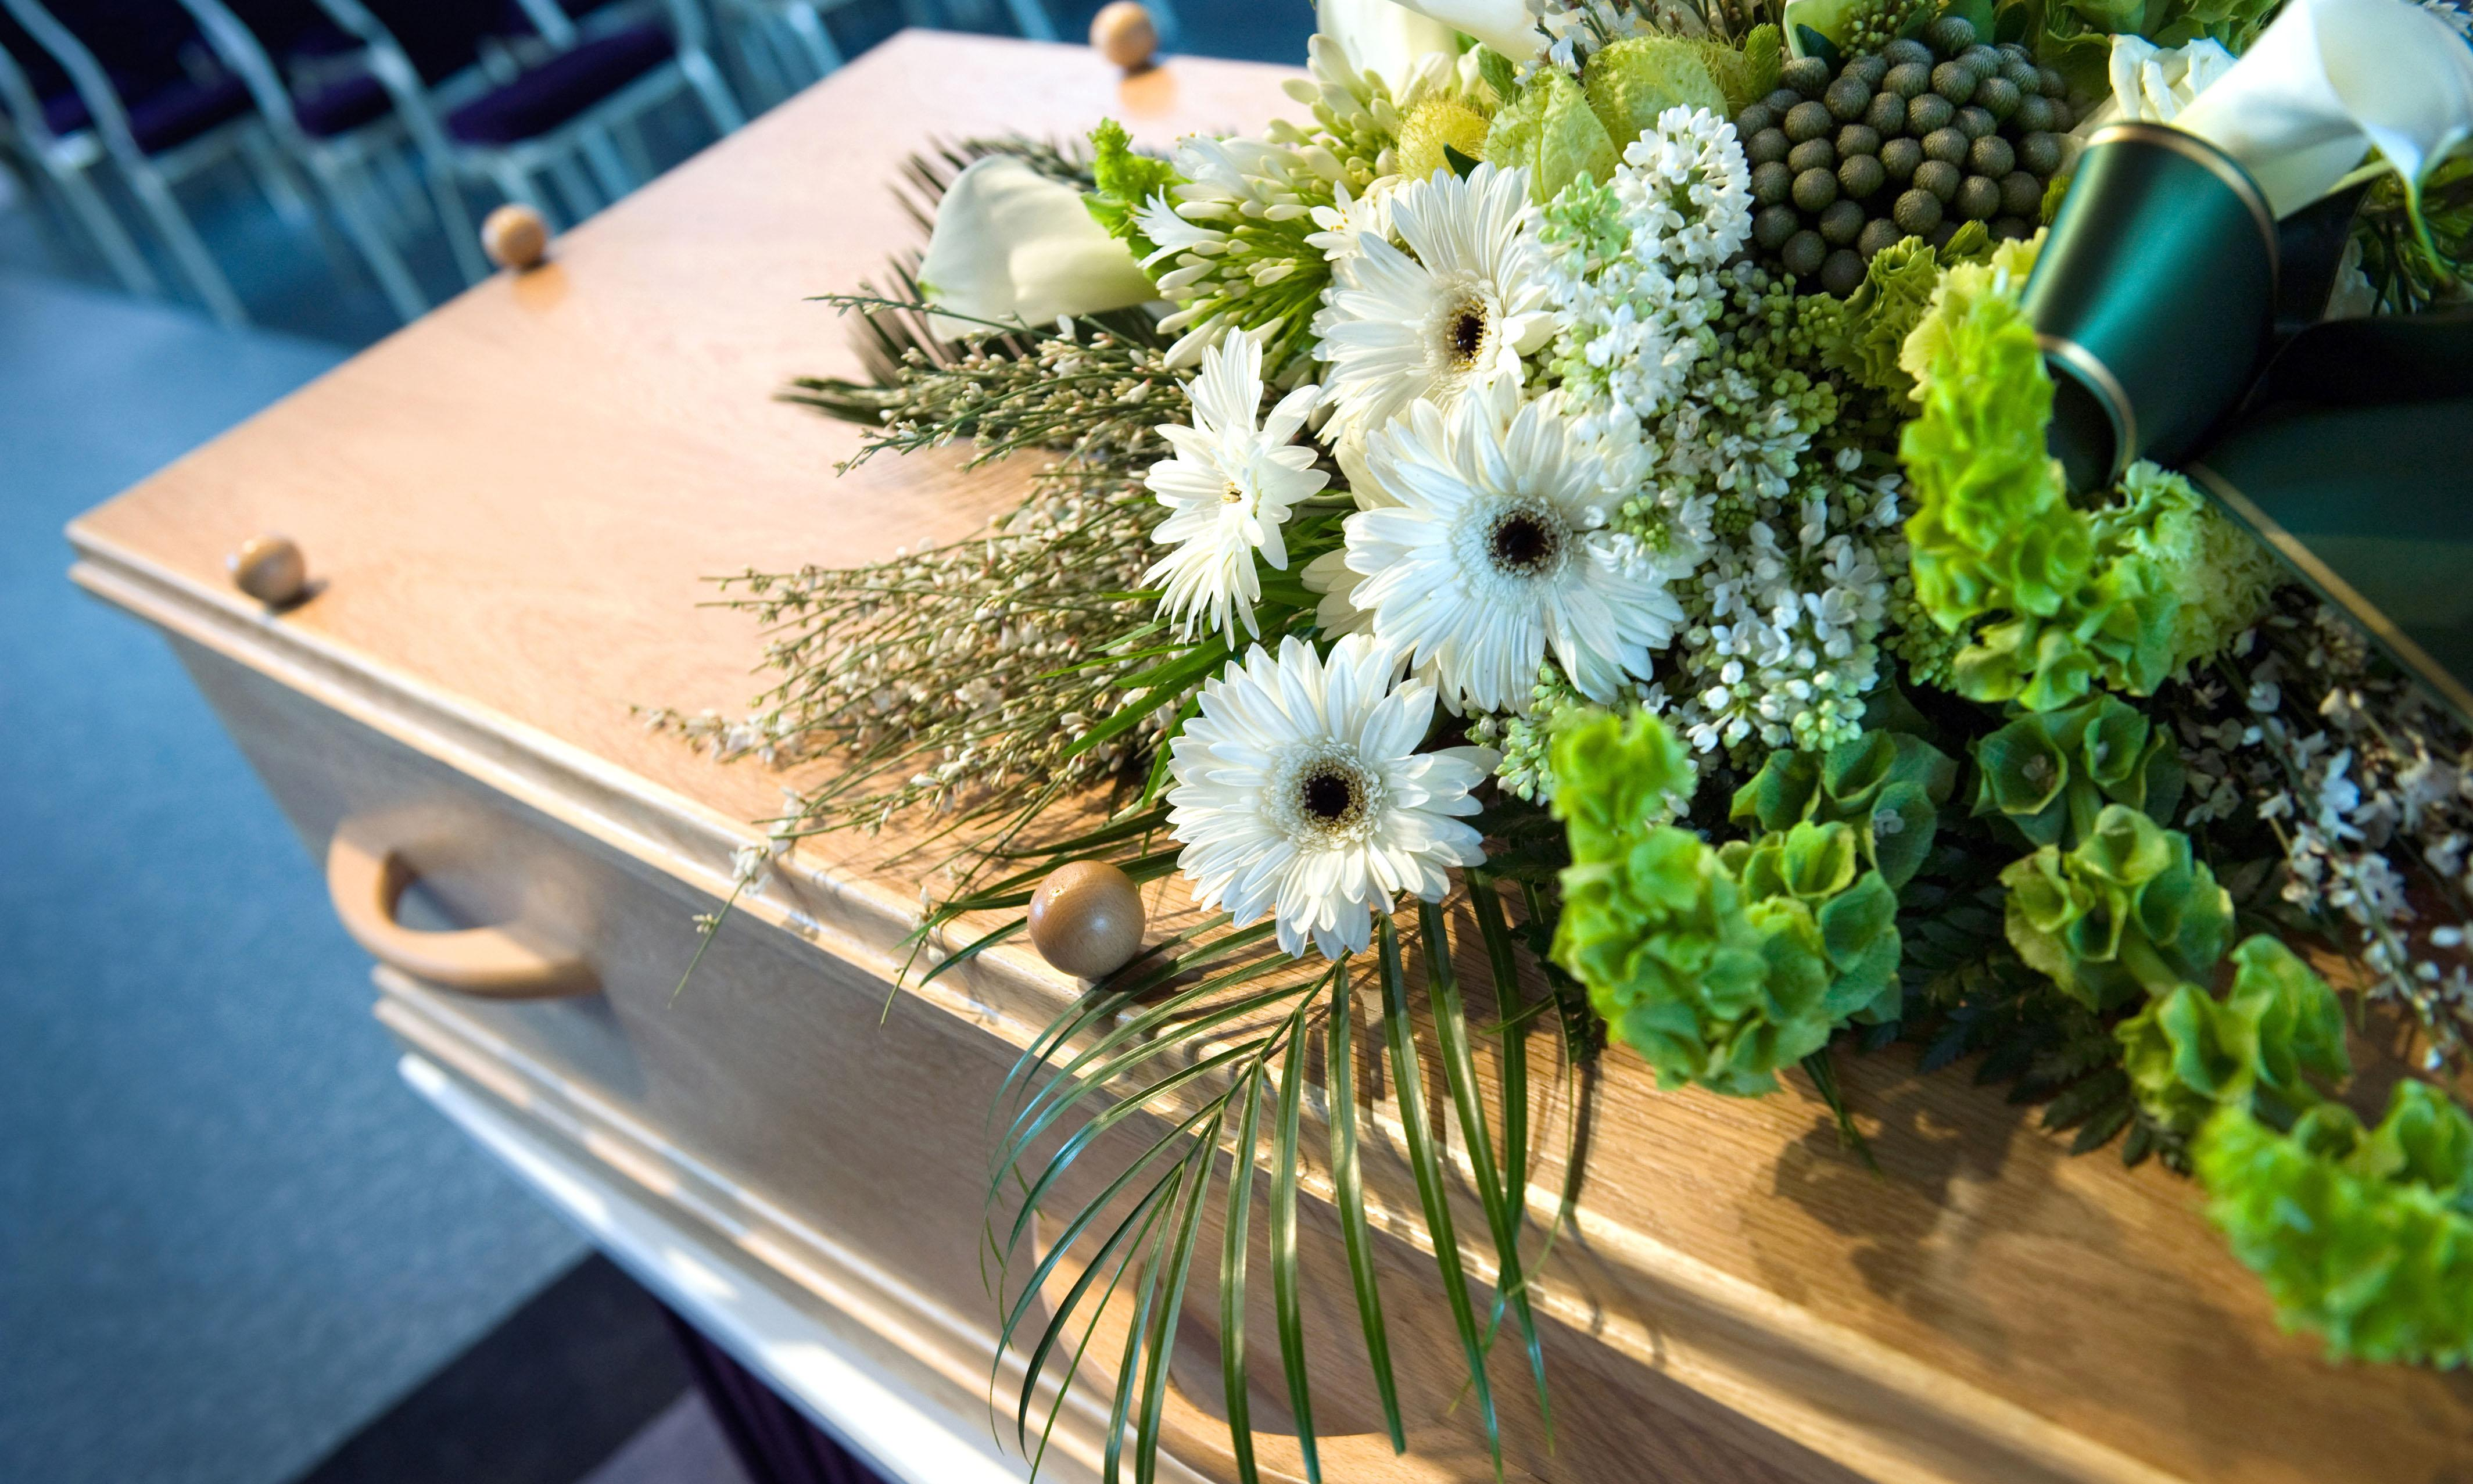 White Lady Funerals operator InvoCare accused of gouging grieving families